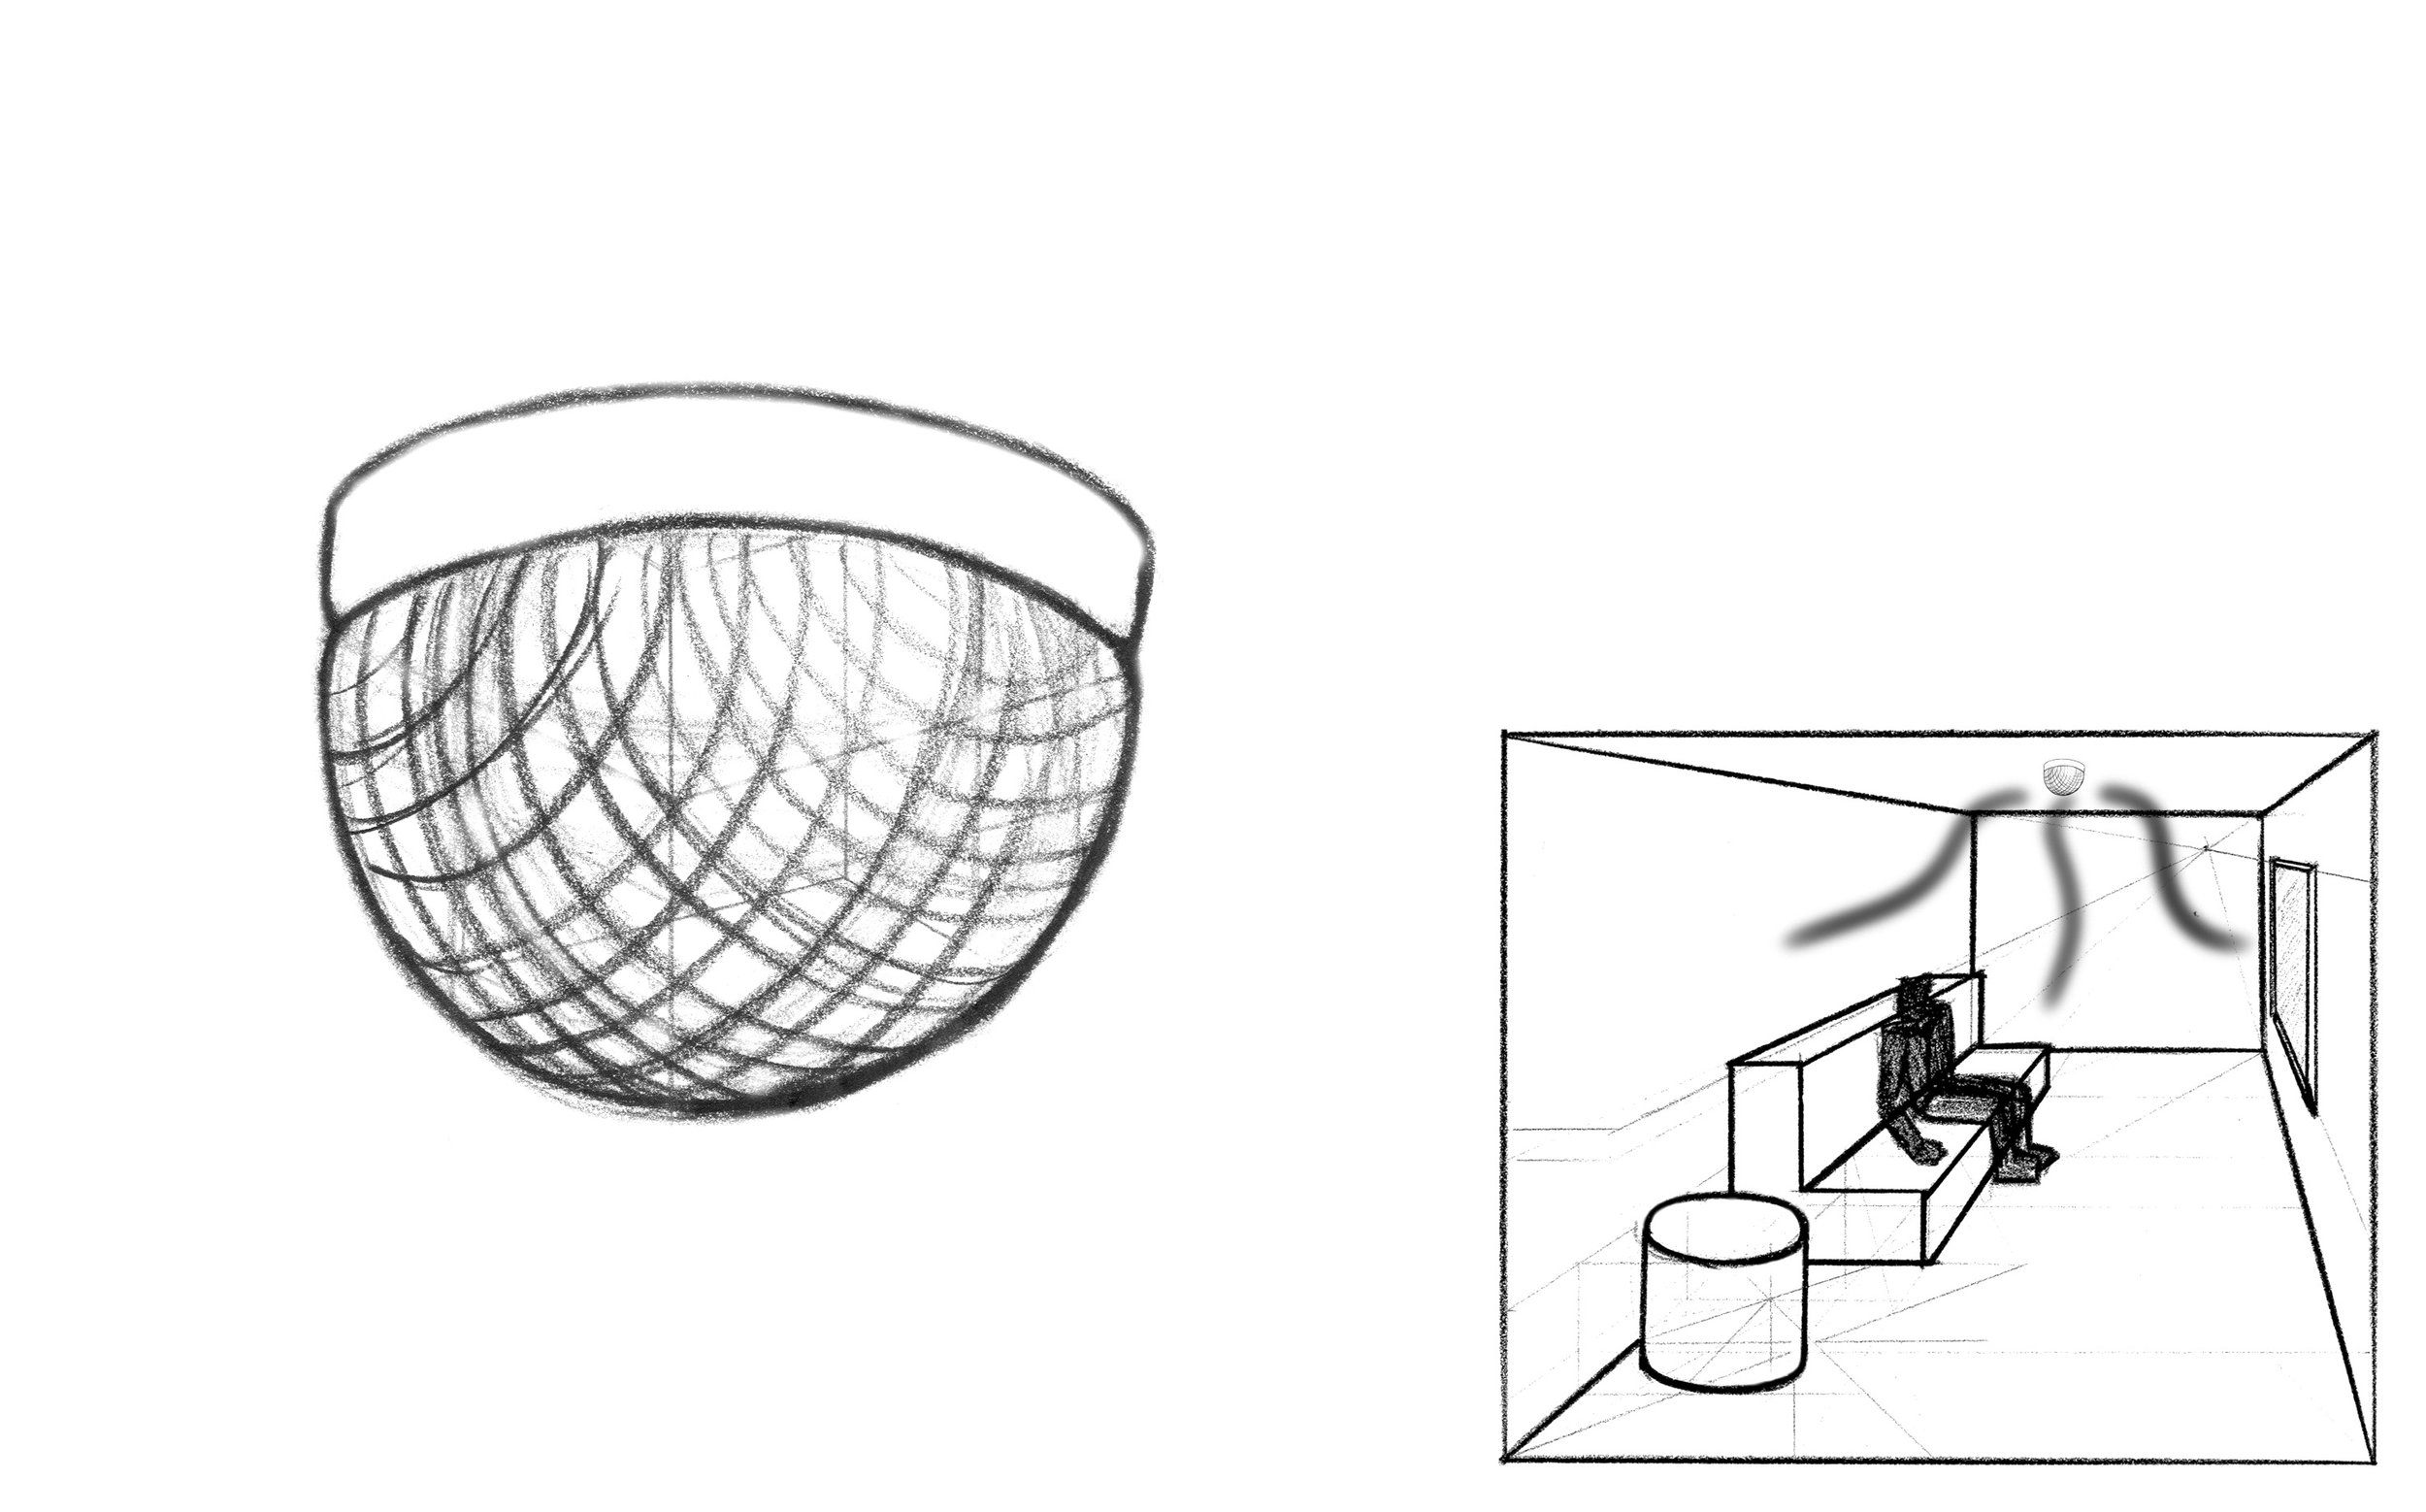 Augmented Smell Concept: Ceiling Diffuser